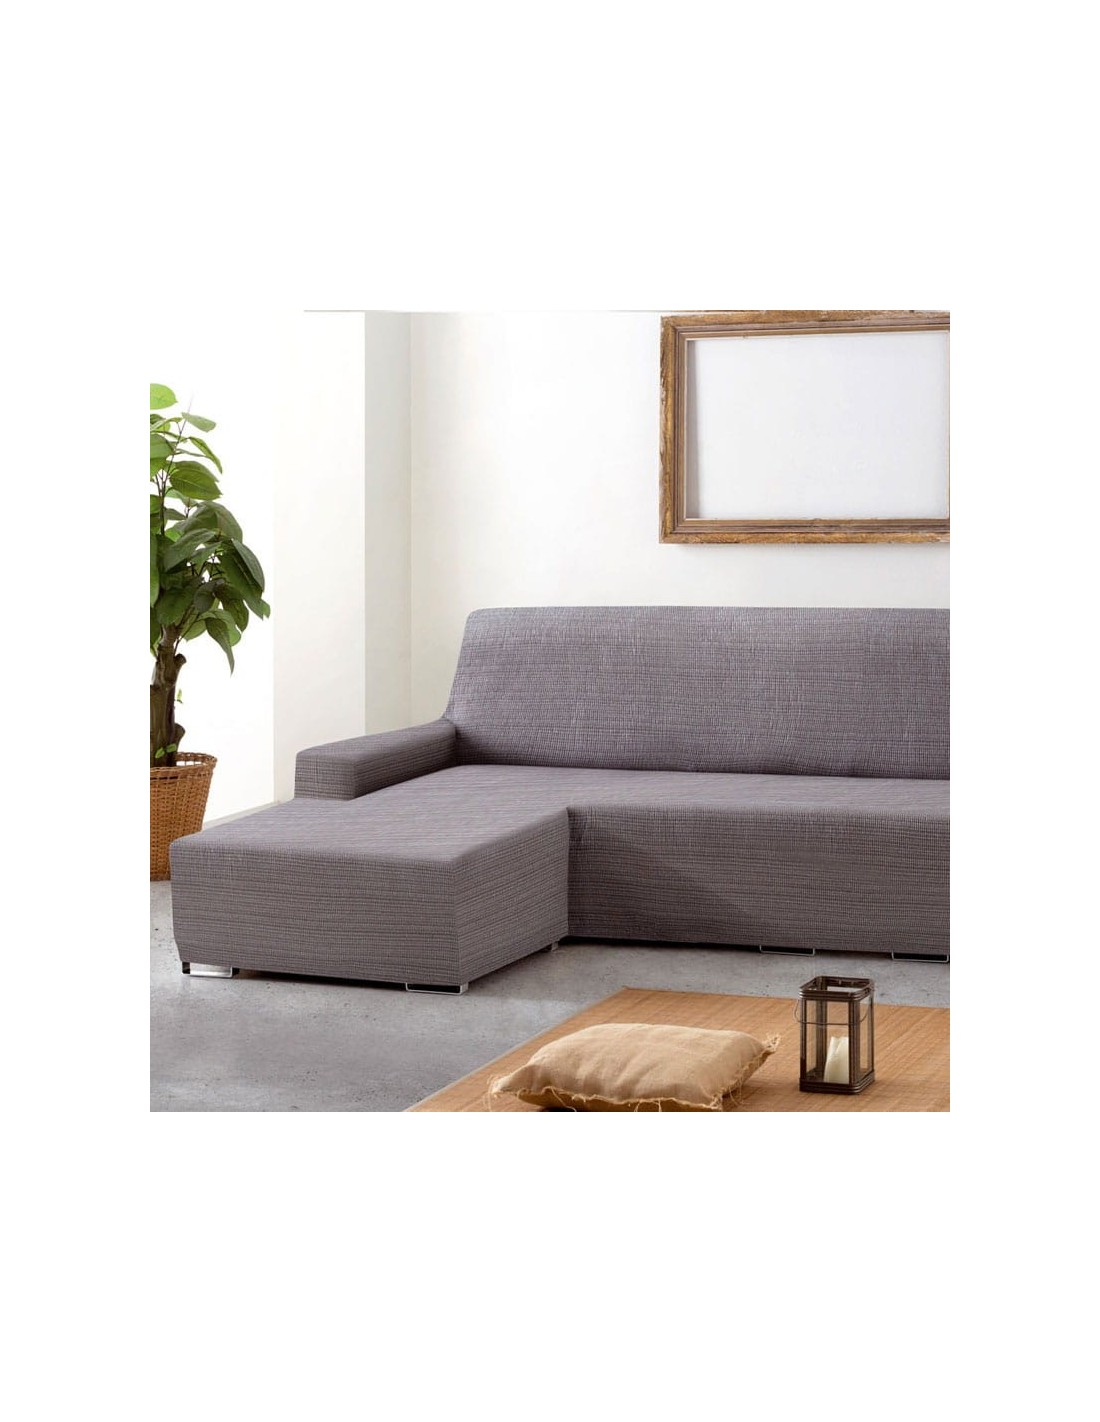 Funda sof chaise longue eysa brazo corto aquiles sofundas for Sofa chester chaise longue